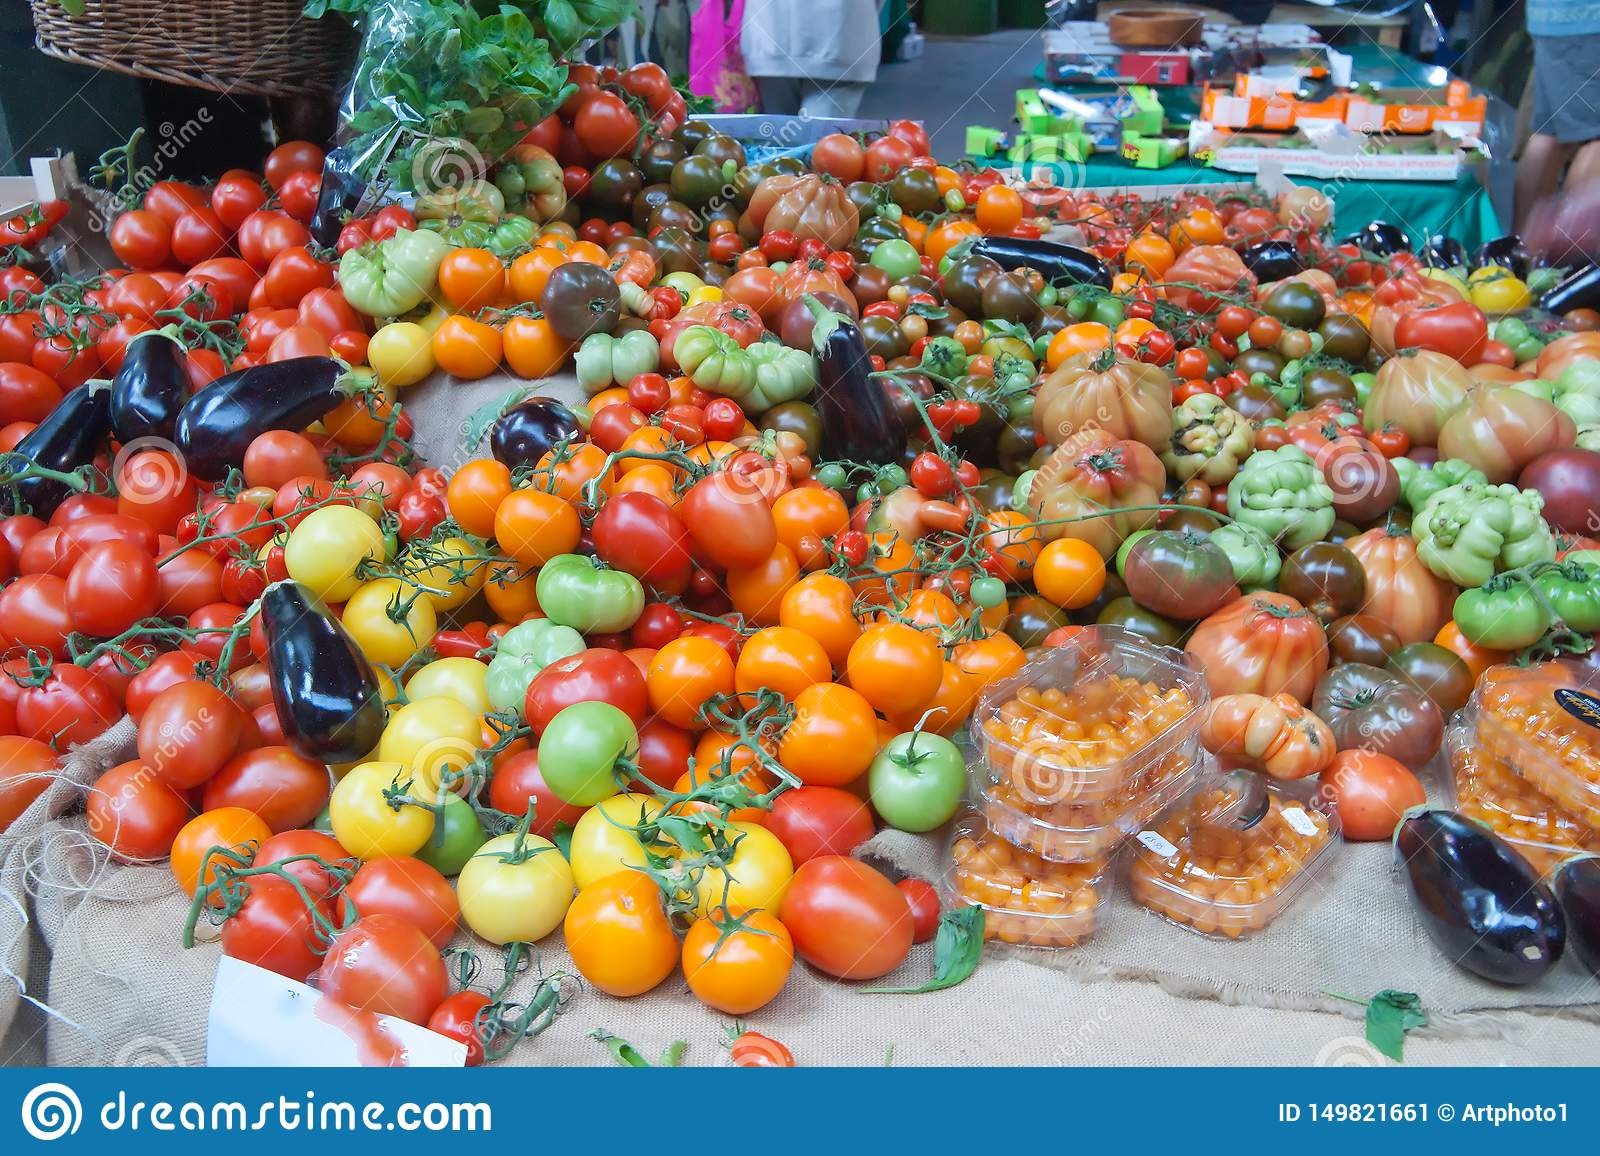 Tomatoes on display in the market